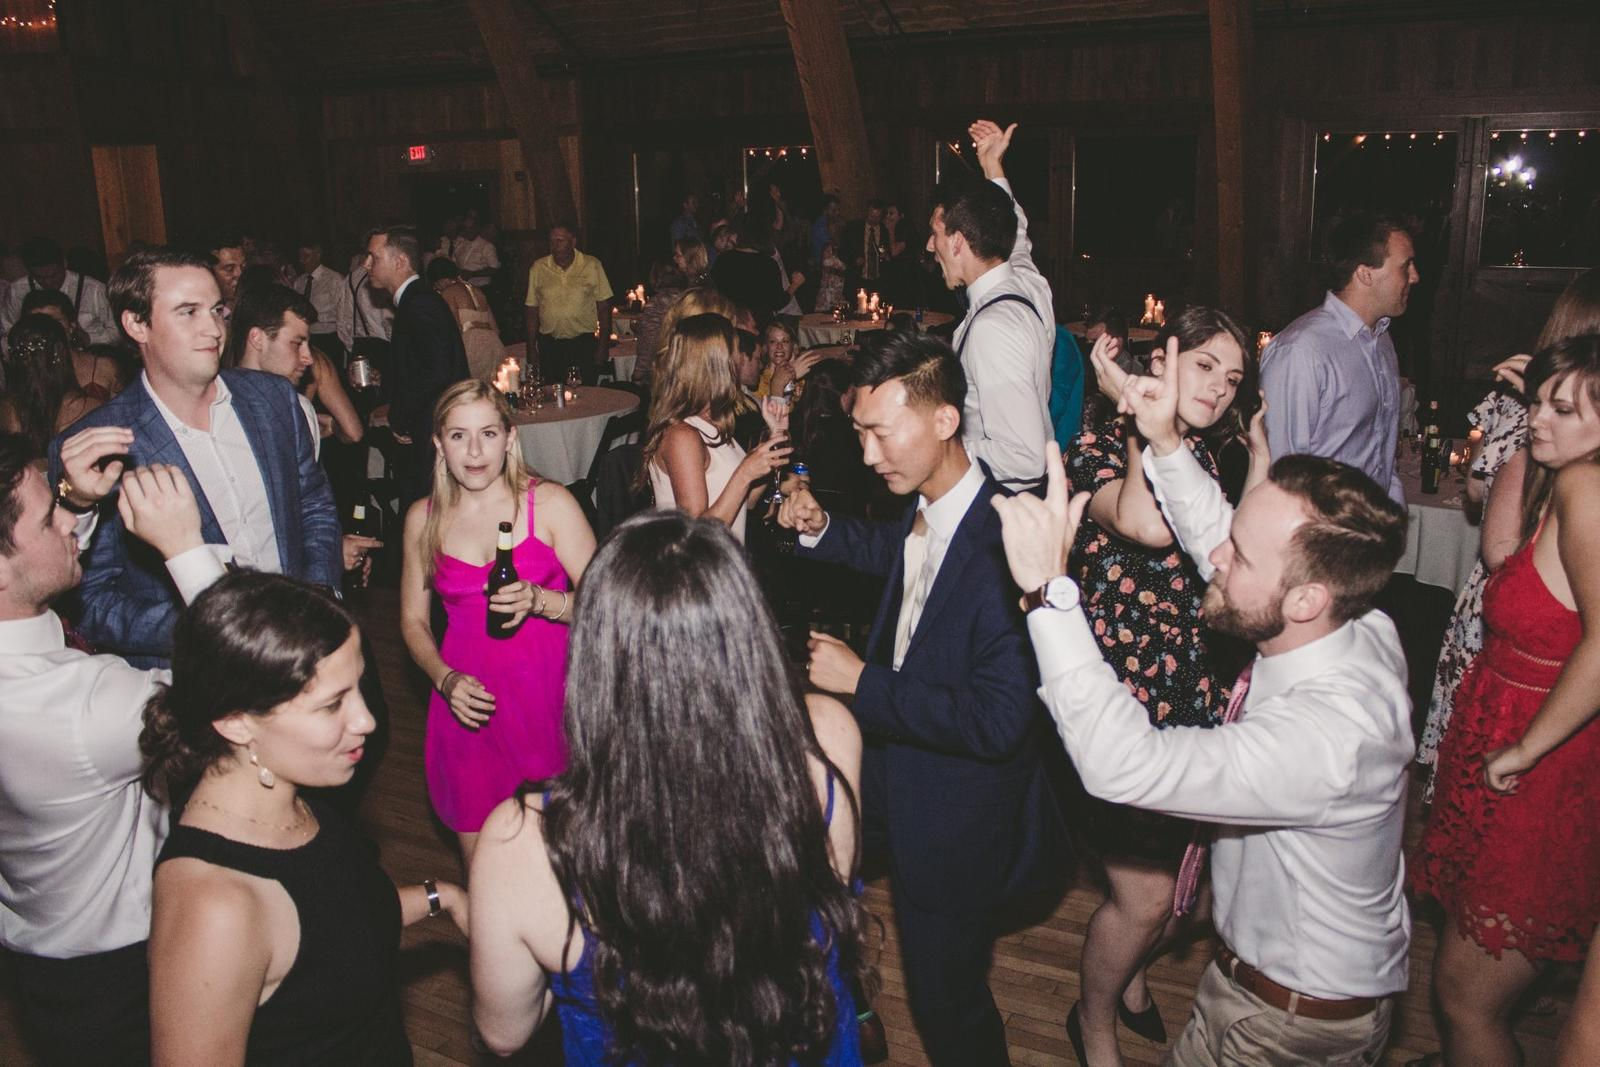 We love the Traveling all across the US to DJ! Wether you are getting married at a private residence or at one of the many beautiful venues around the world we have the experience to handle your unique, beautiful, and fun wedding. -